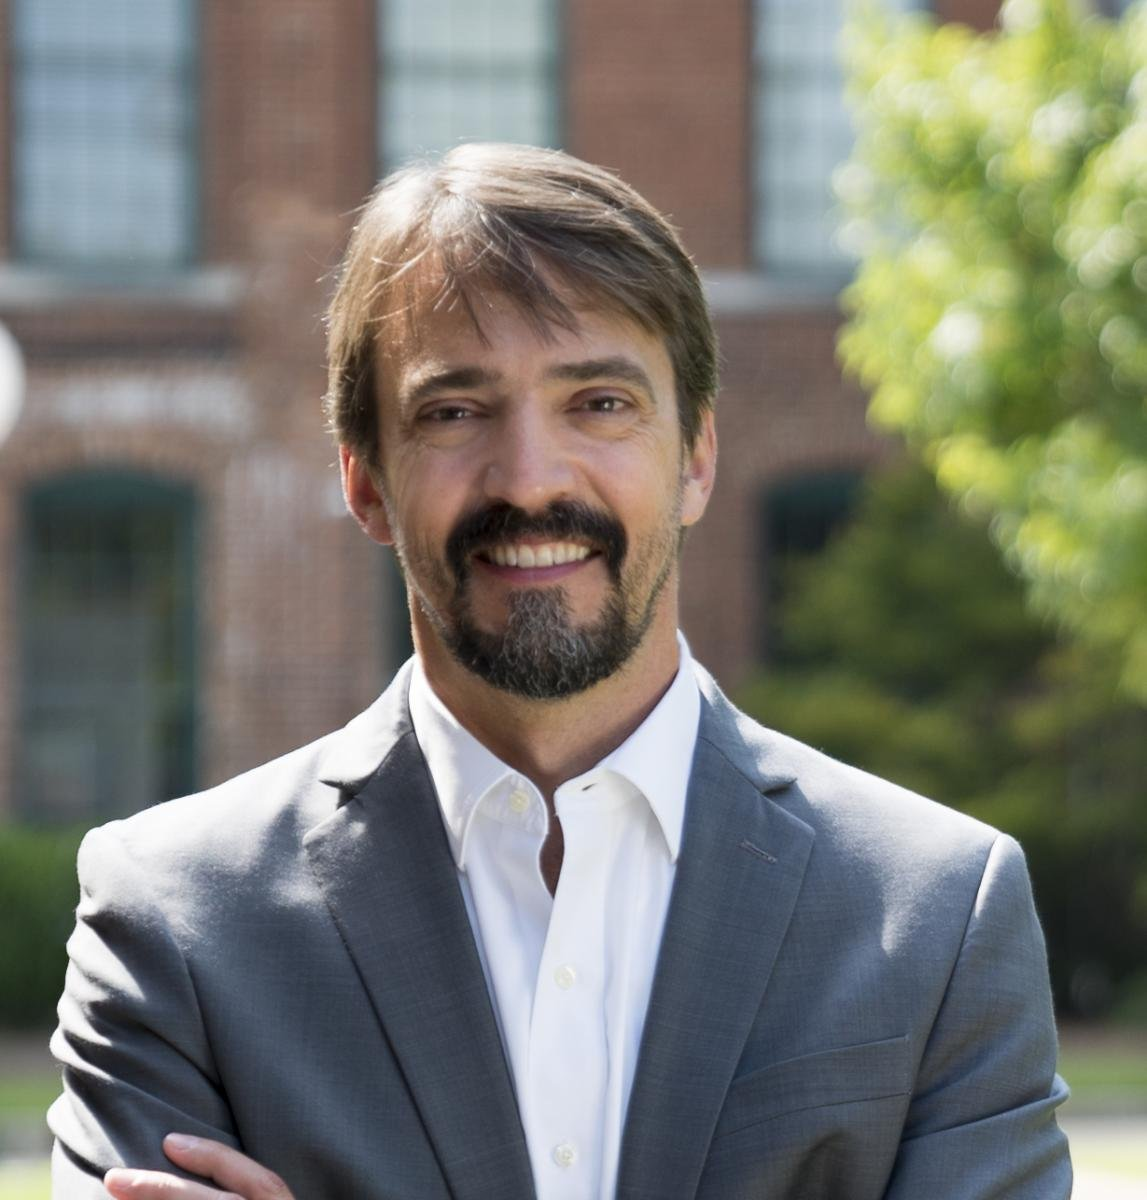 Barry White Accepts New Position With Chattanooga CVB